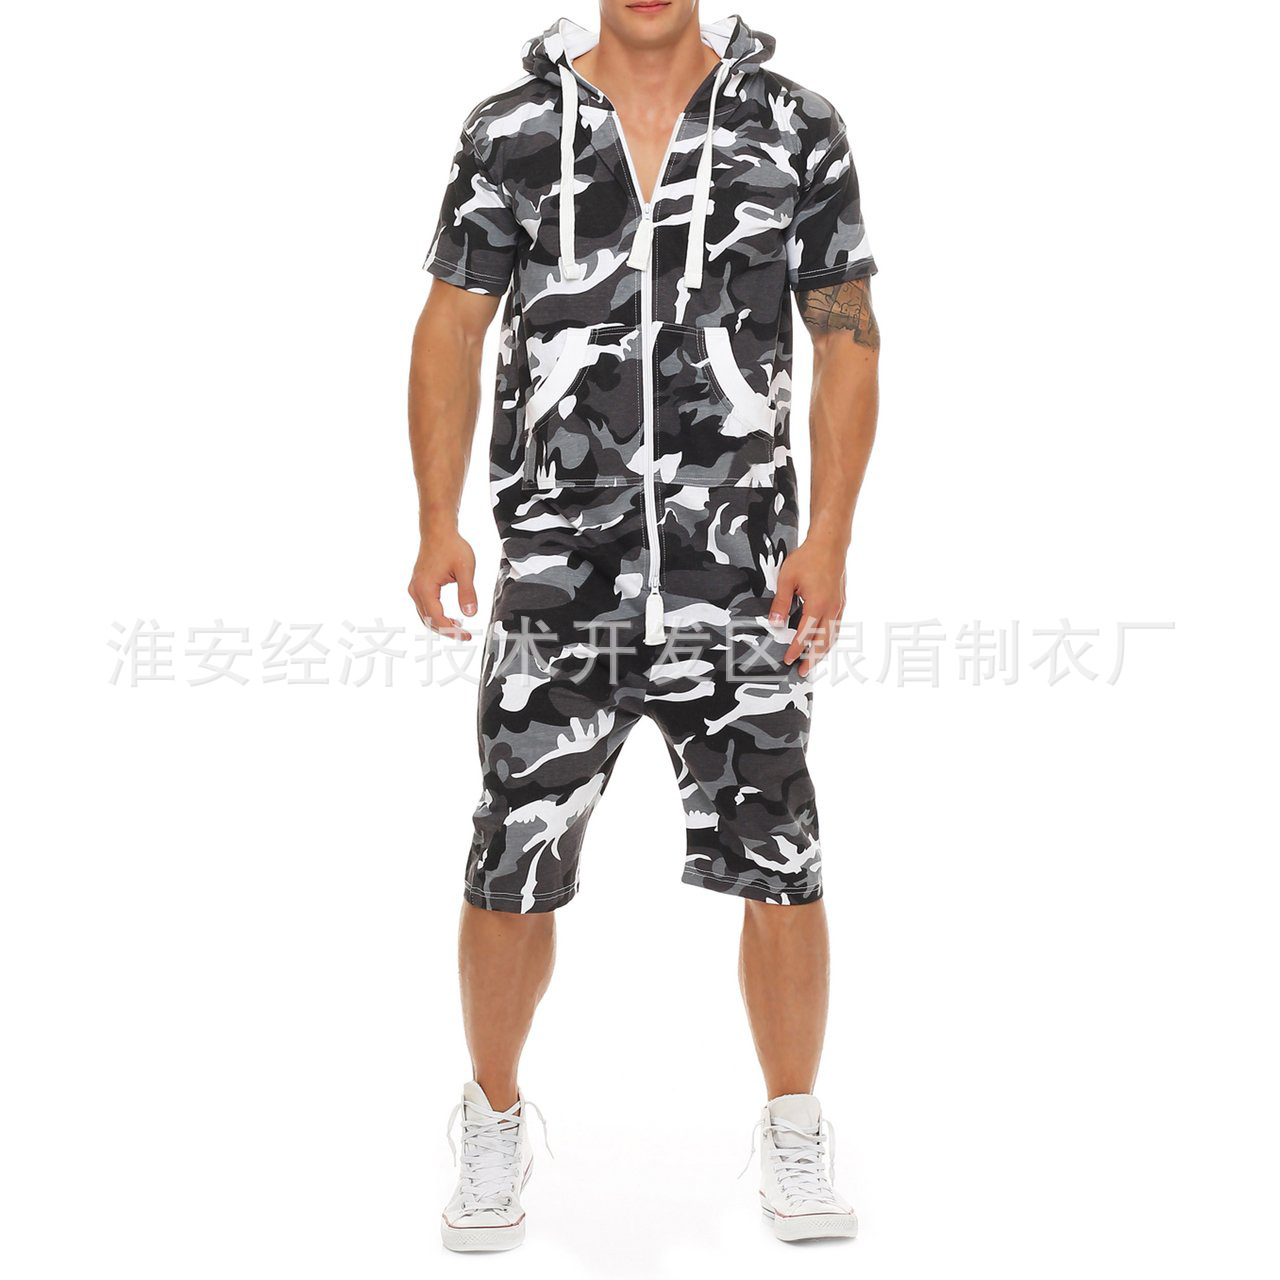 2019 Men's Europe And America Camouflage One-piece Casual Outdoor Sports Hooded Pajama Set Men's